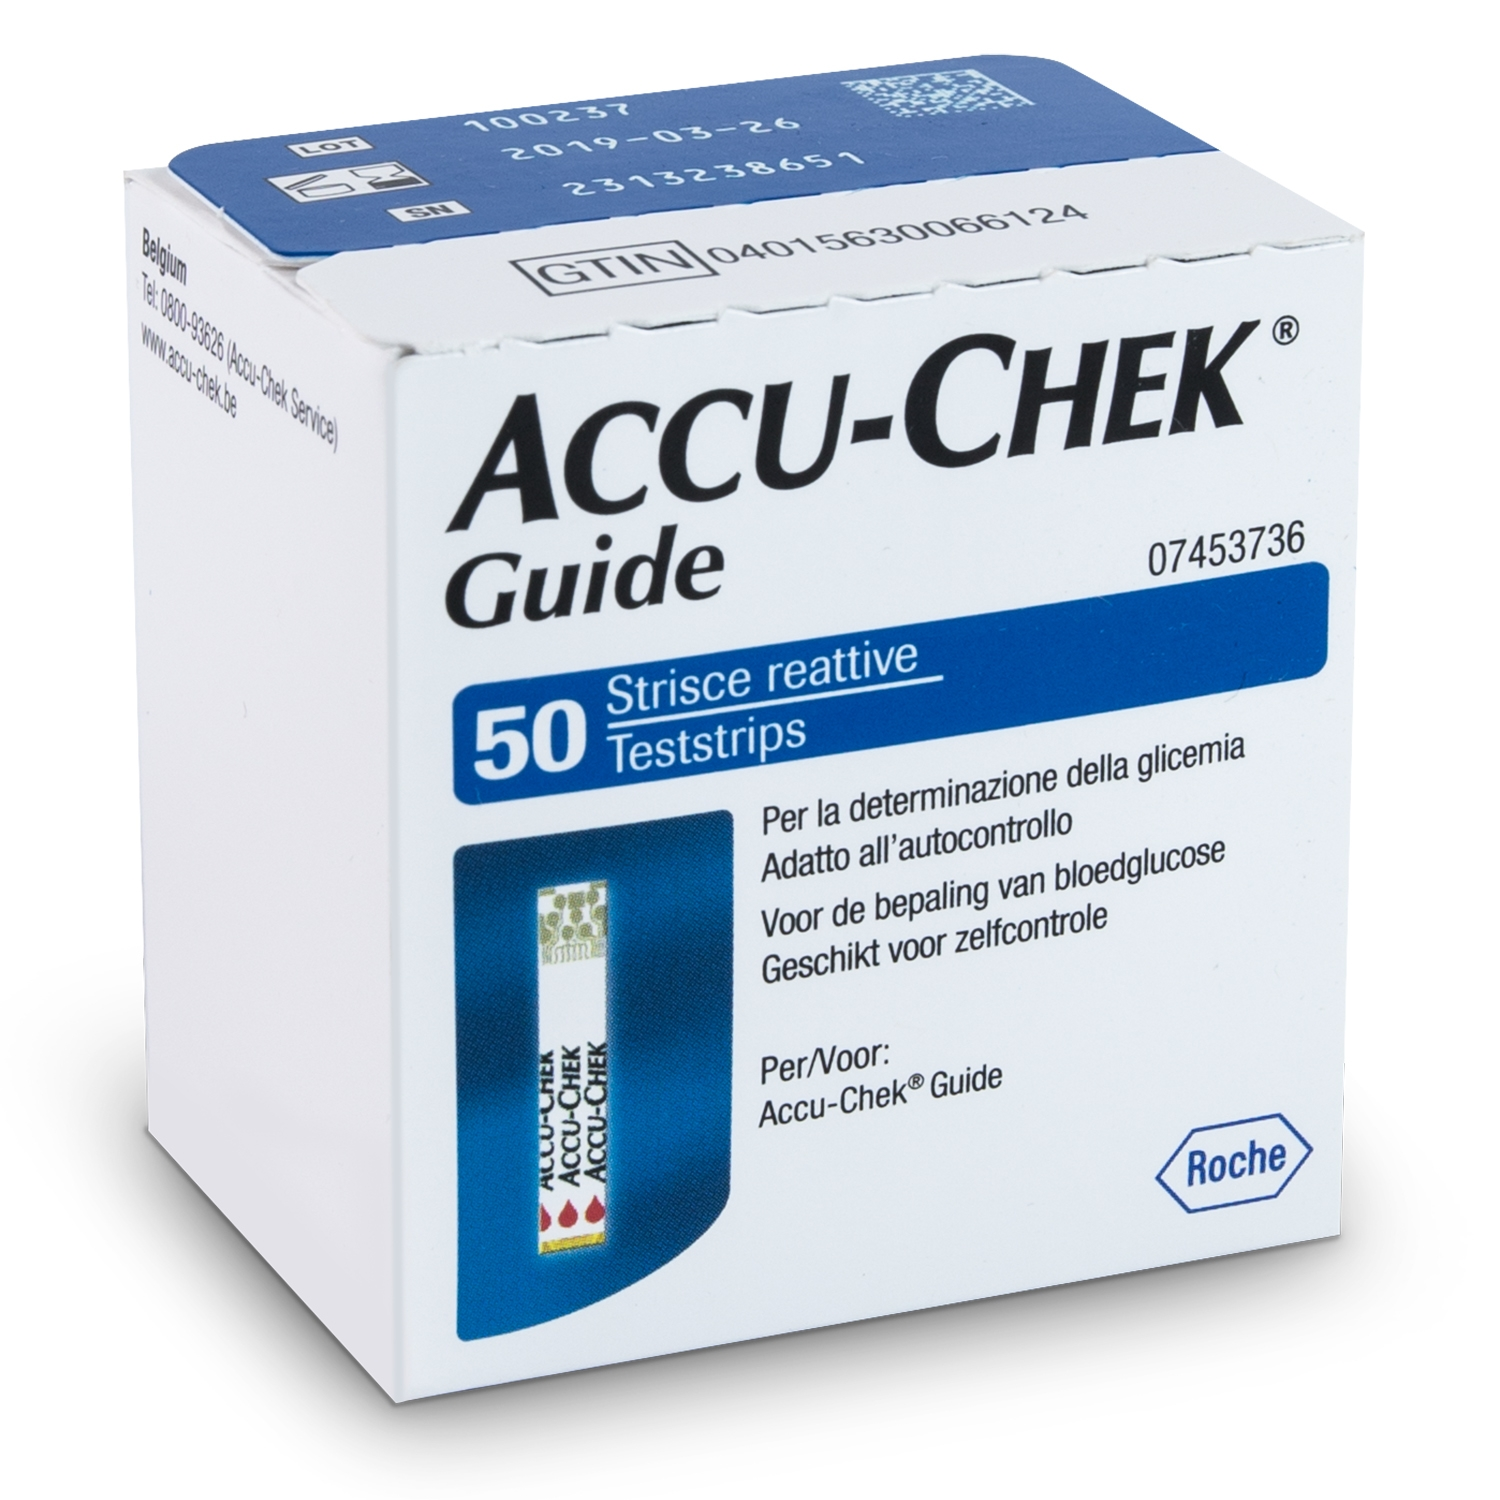 Accu-Chek Guide teststrips (50 st)